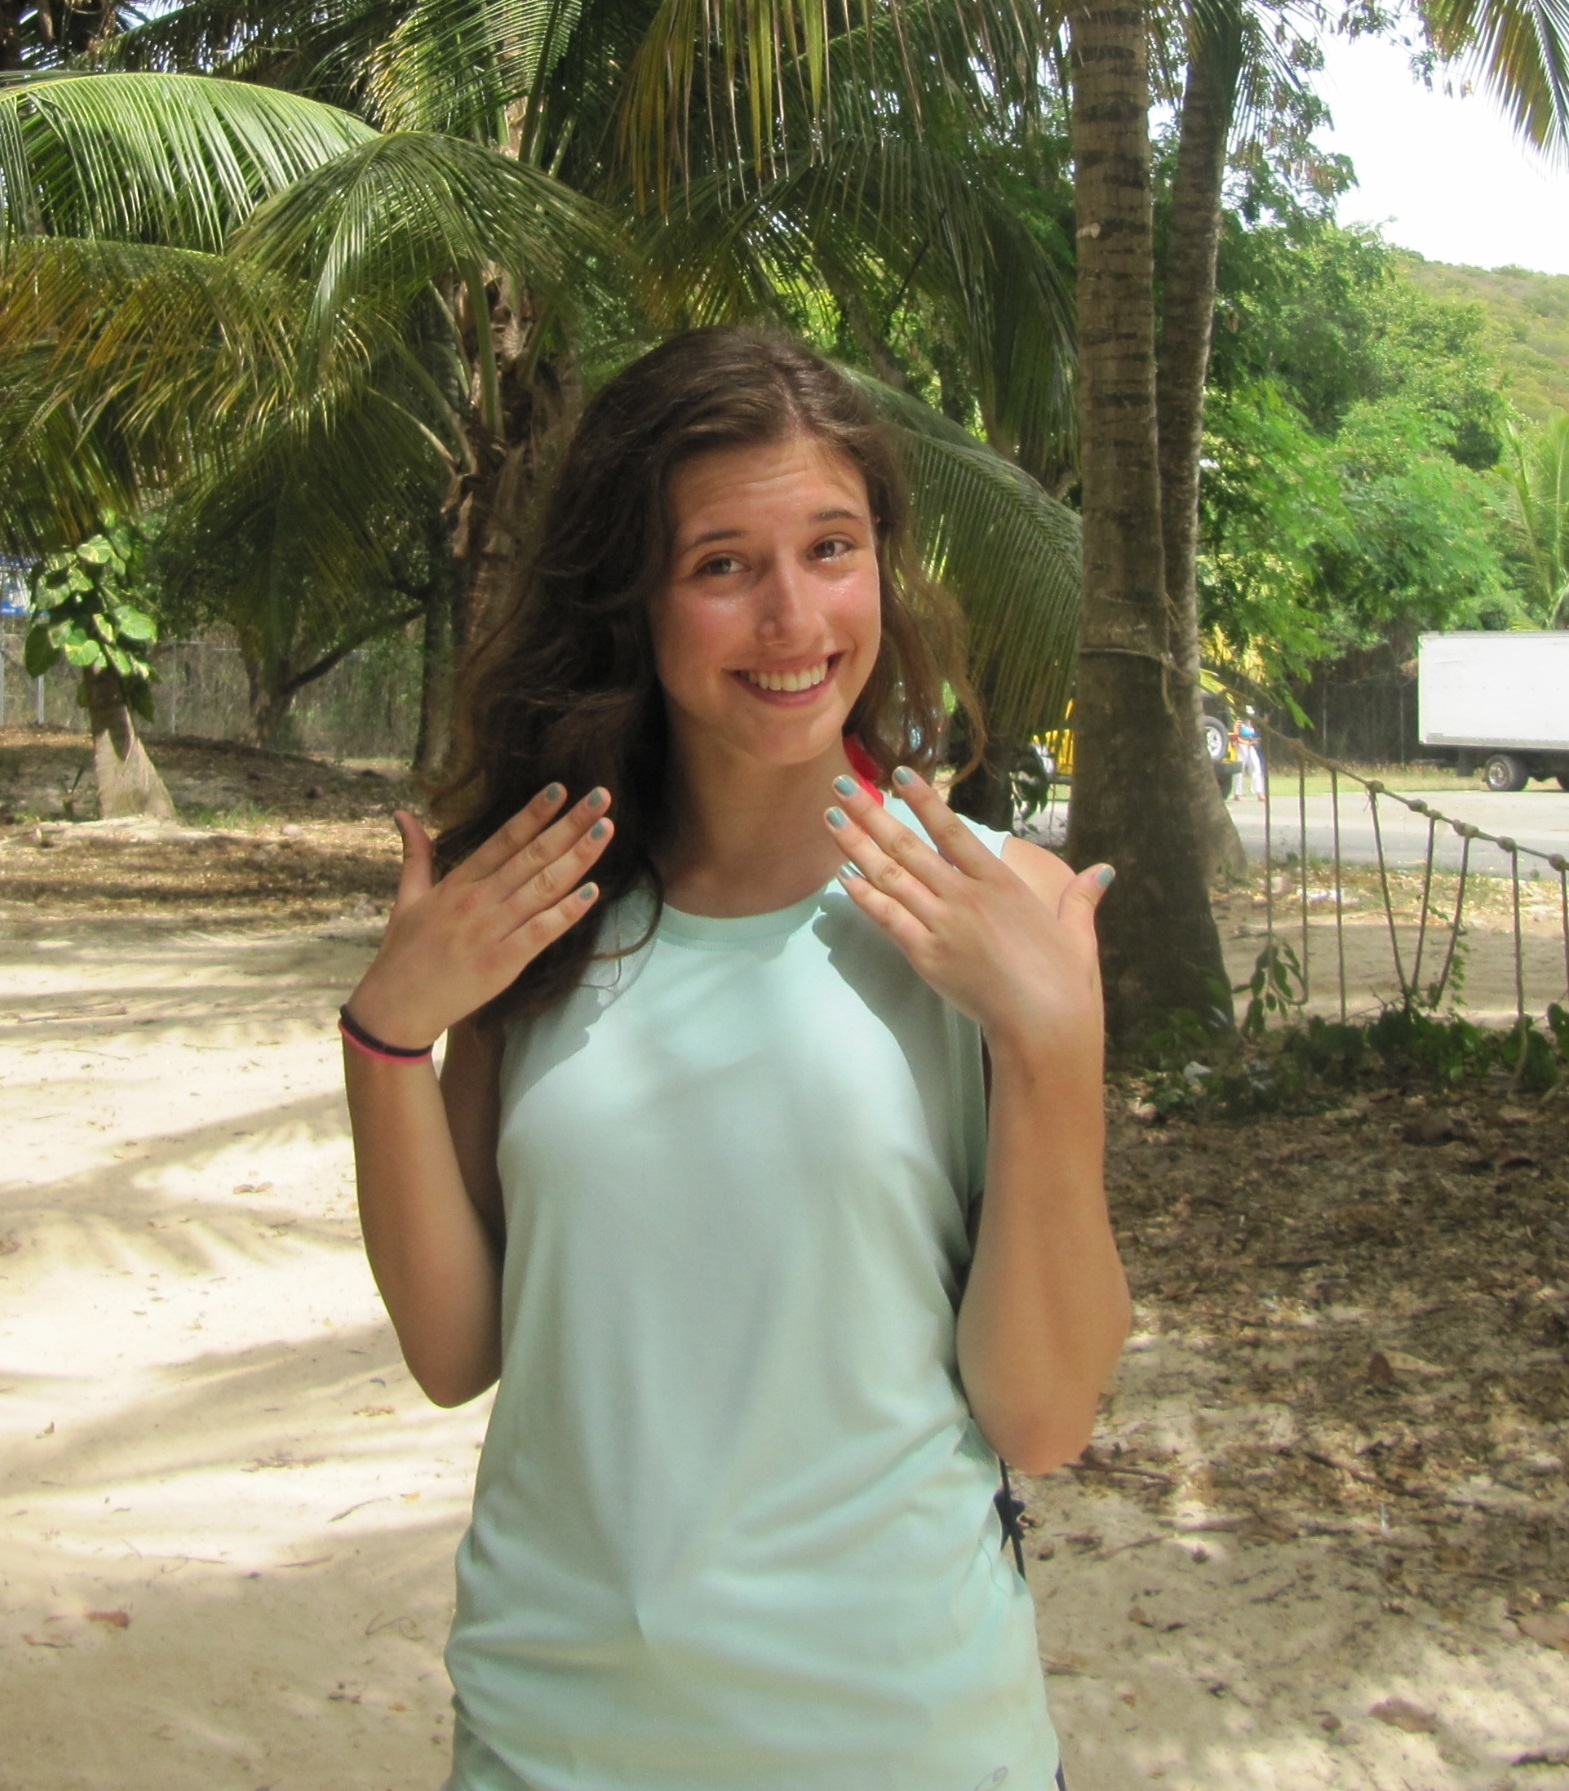 Ella DiPetto: Ella attends Virginia Polytechnic and State University with a major in Wildlife Conservation. She enjoys diving and visiting the ocean.